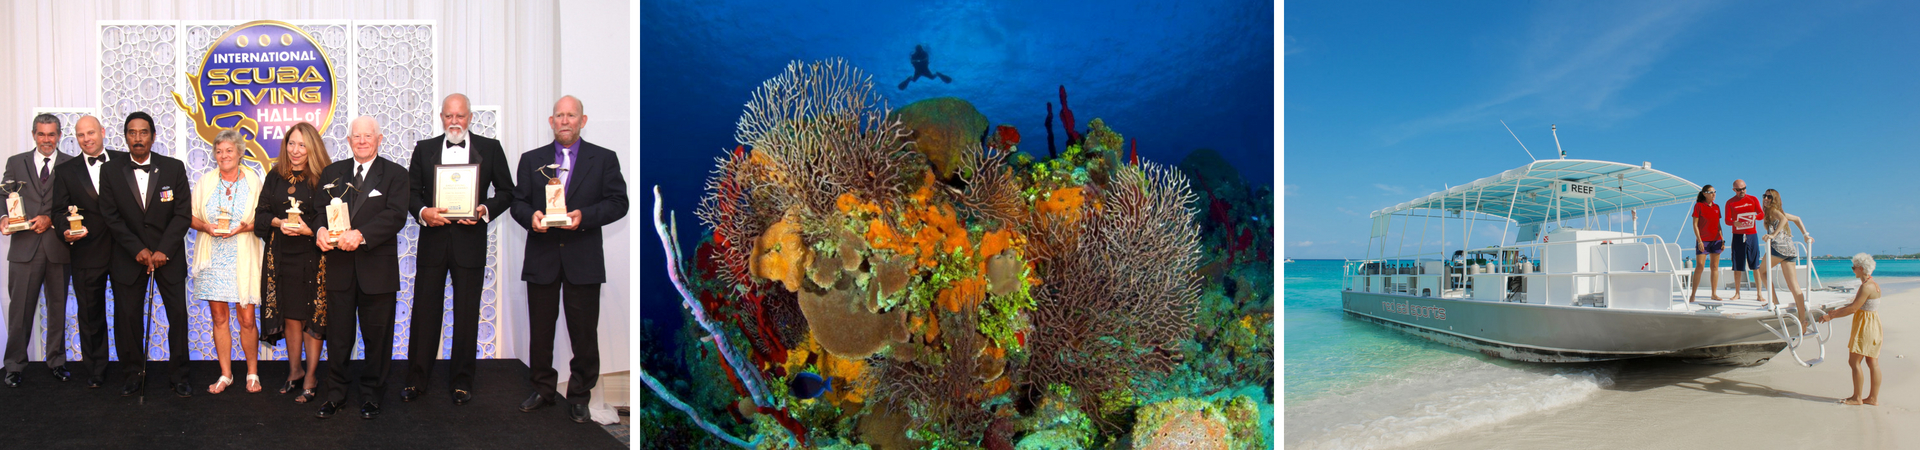 International Scuba Diving Hall of Fame Dive Package